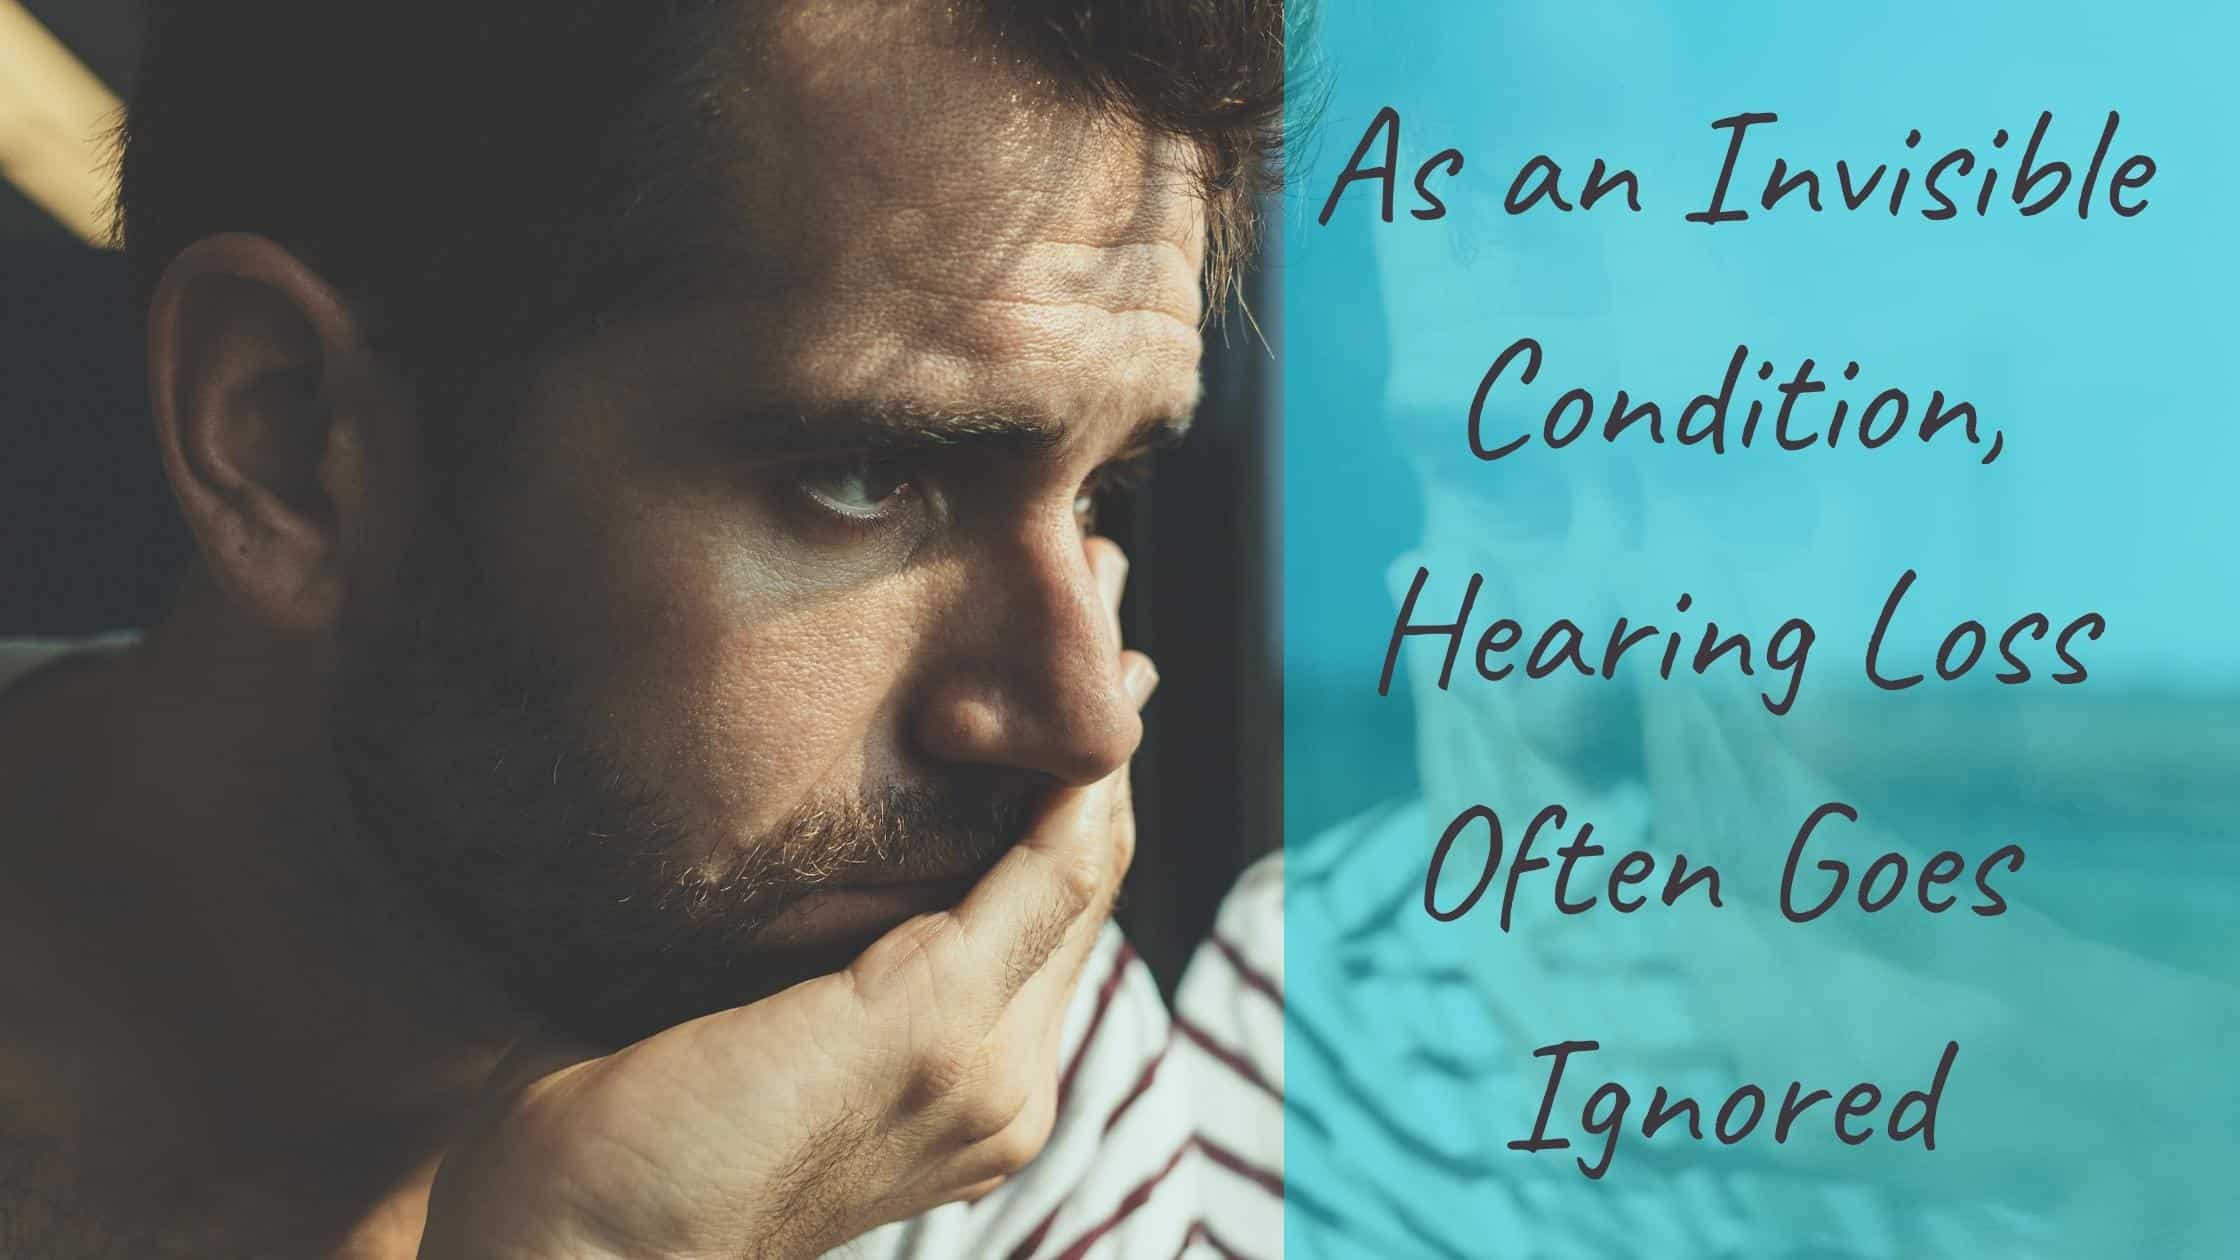 As an Invisible Condition, Hearing Loss Often Goes Ignored